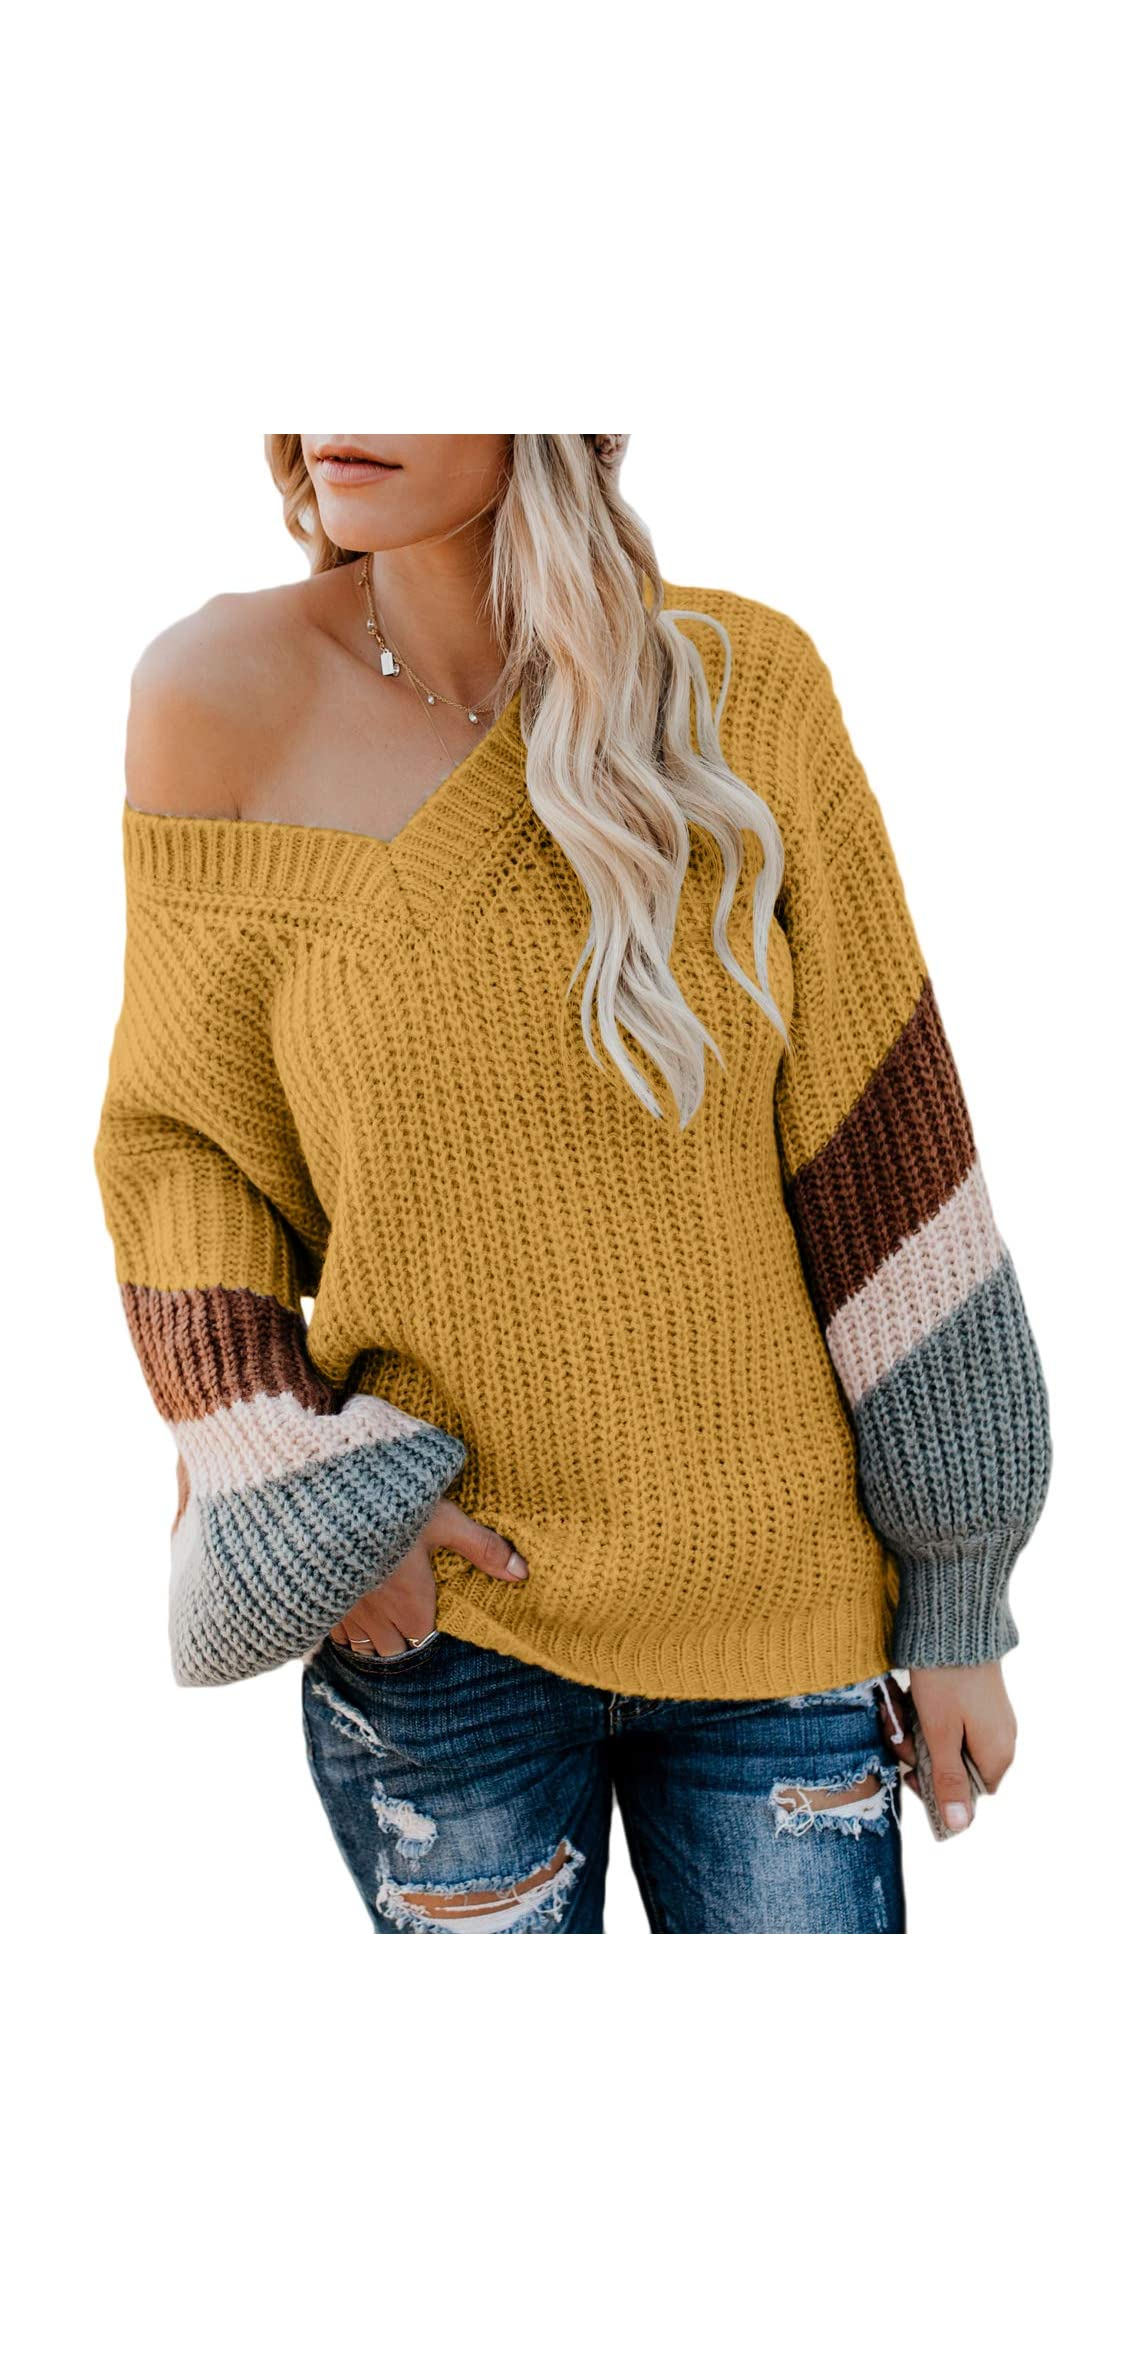 Women's V Neck Long Sleeve Striped Knitted Chunky Sweater